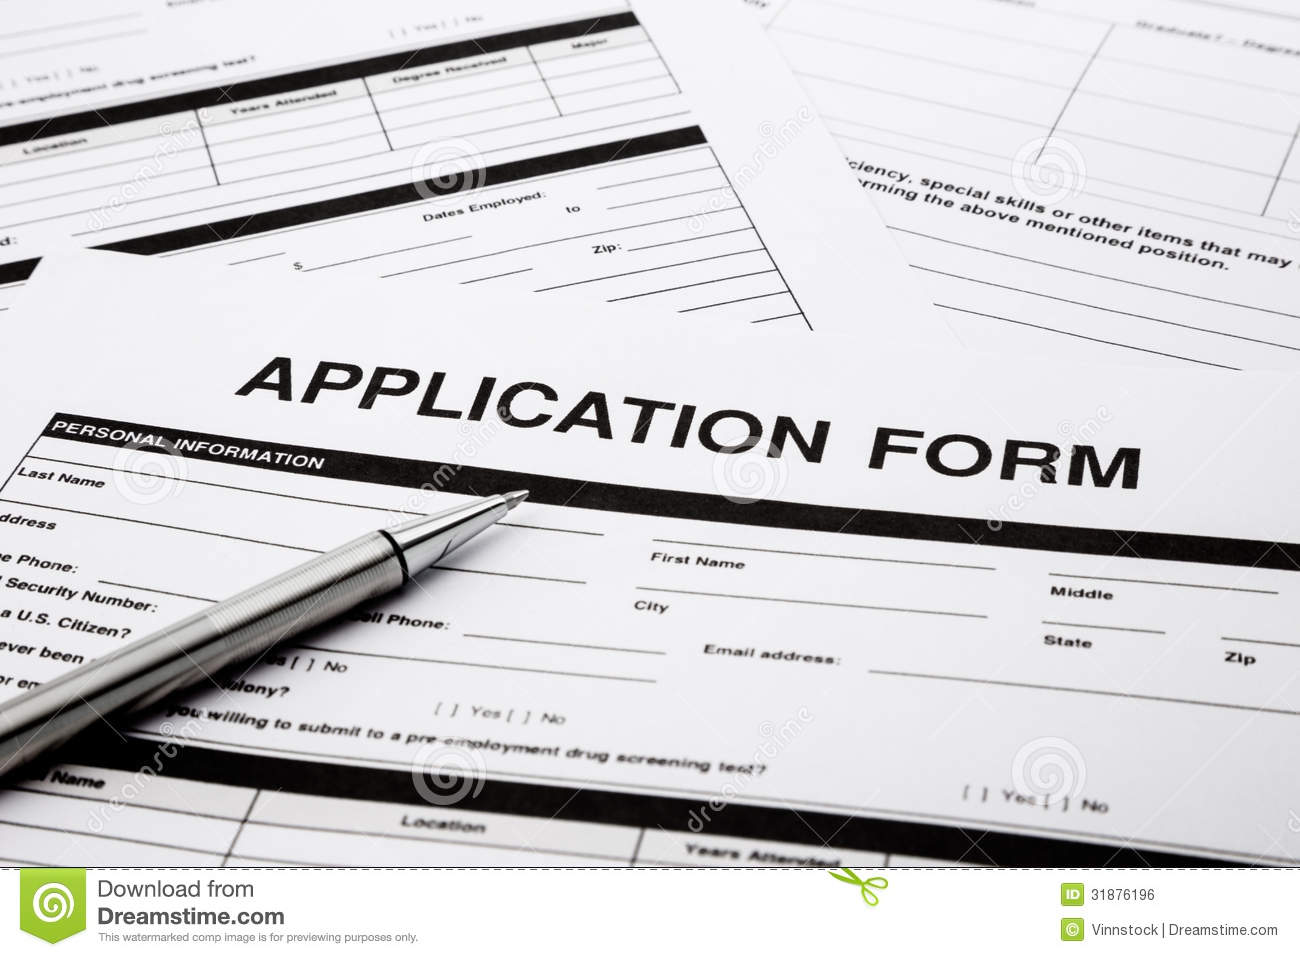 application form clipart clipart kid job application clipart job application form